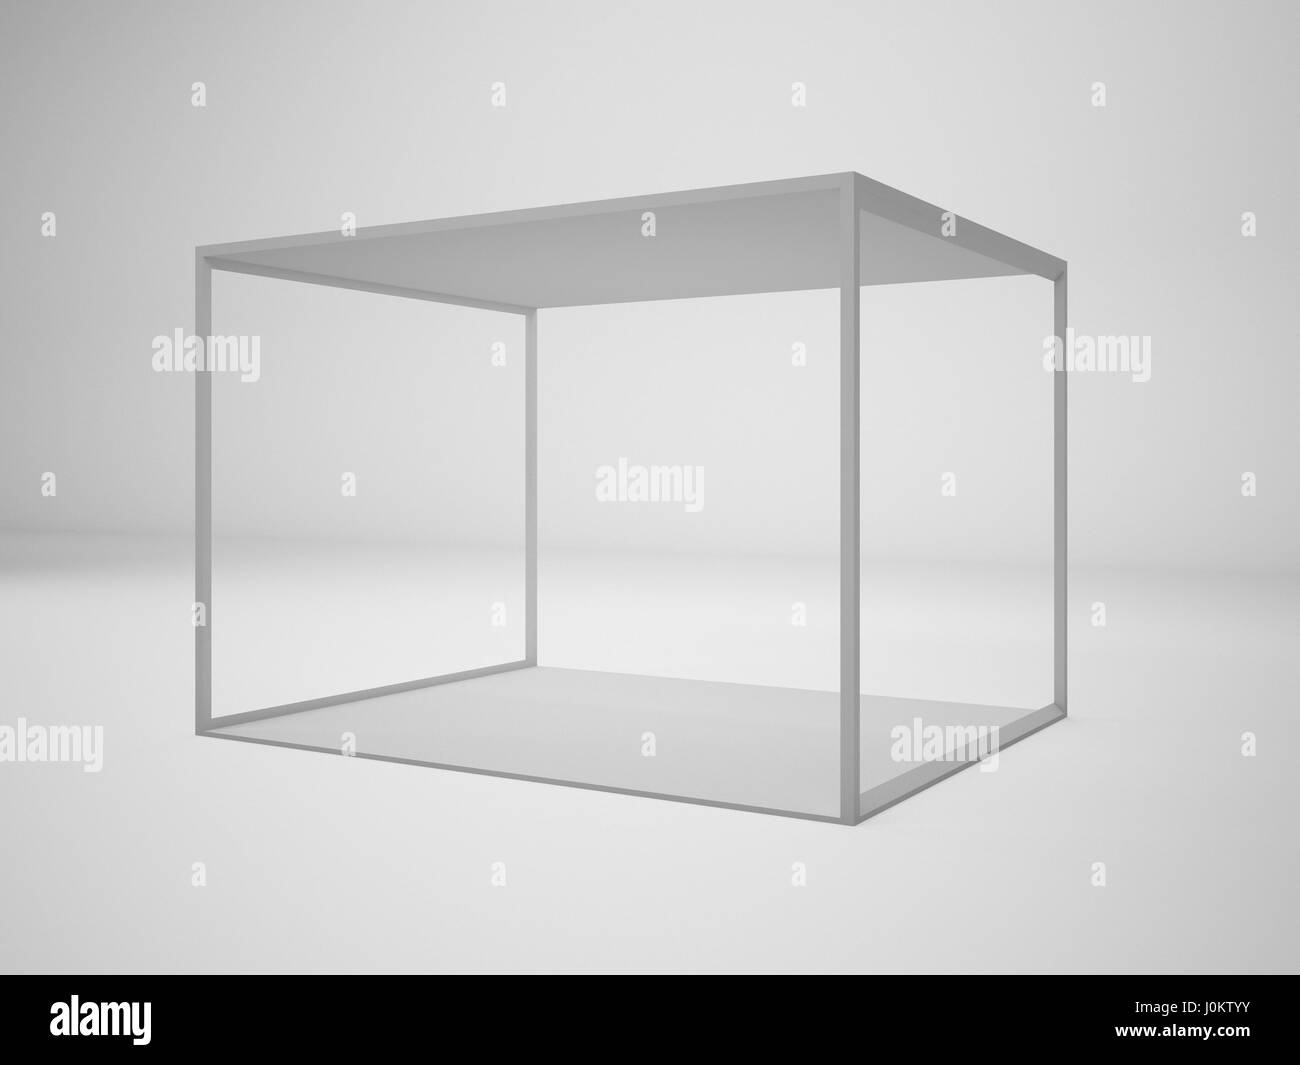 Exhibition Booth Mockup : D rendering white modern trade exhibition booth illustration